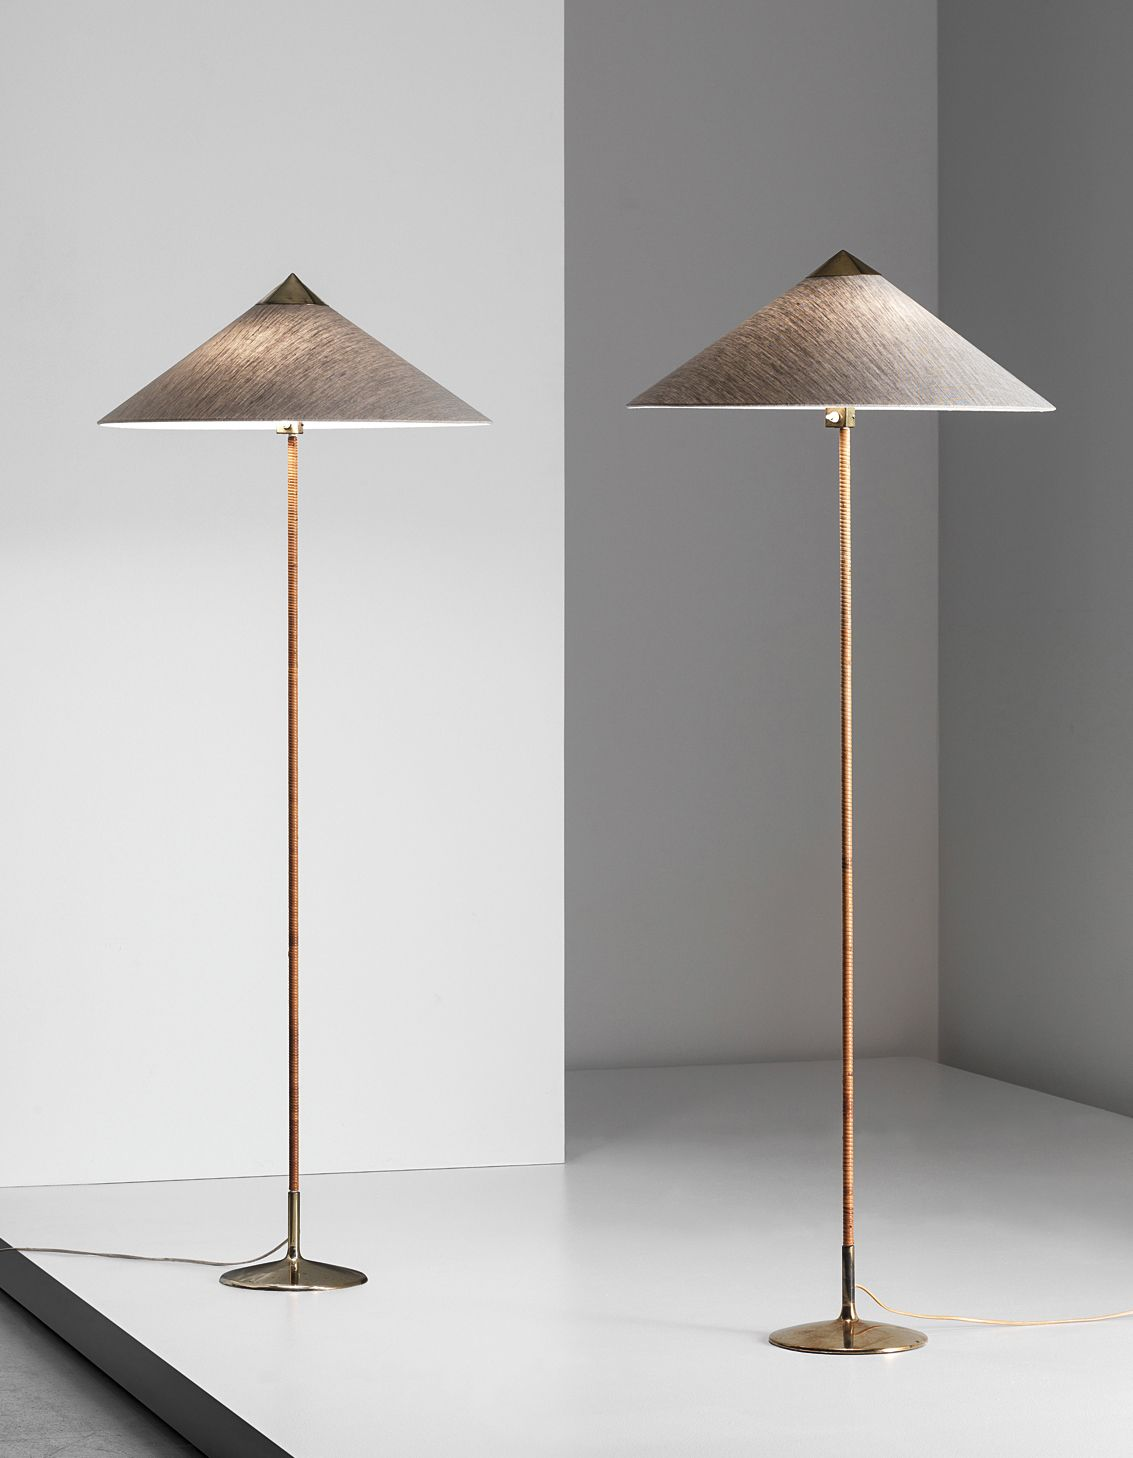 Paavo tynell pair of standard lamps model no 6902 1950s m paavo tynell painted metal brass and leather floor lamps for taito oy aloadofball Images